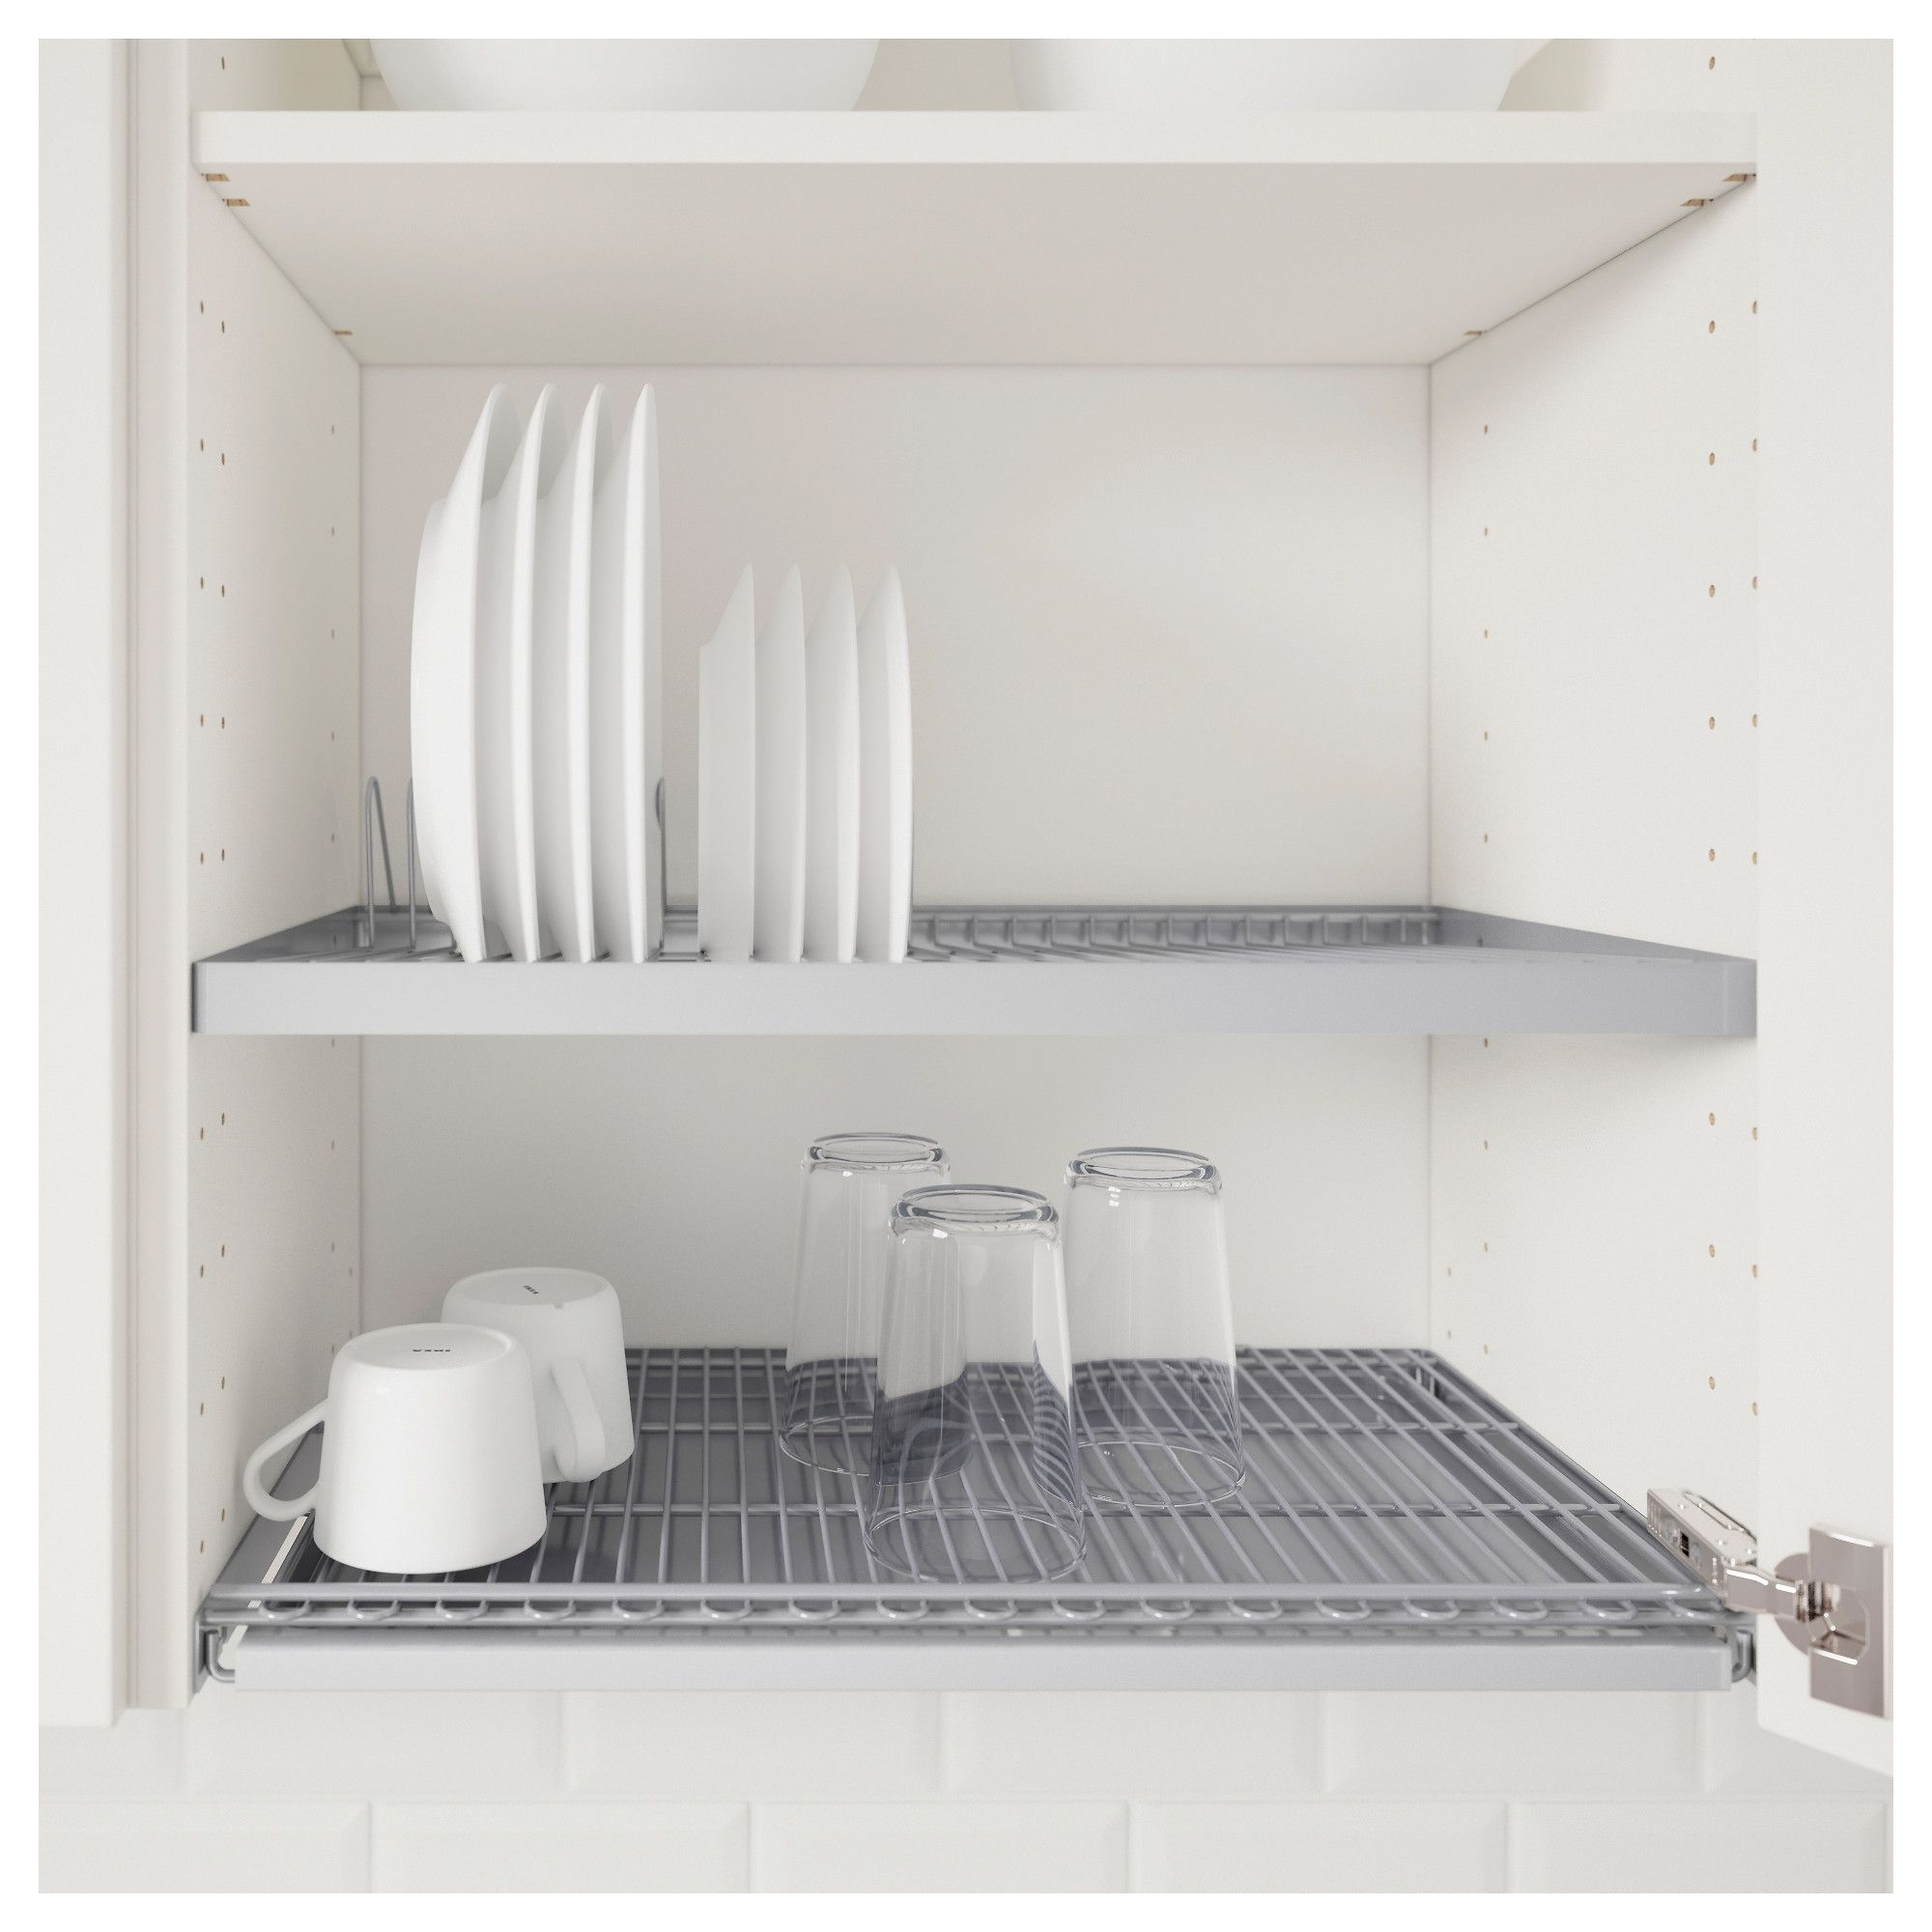 UTRUSTA Dish drainer for wall cabinet IKEA | Dish drainers, Inside ...